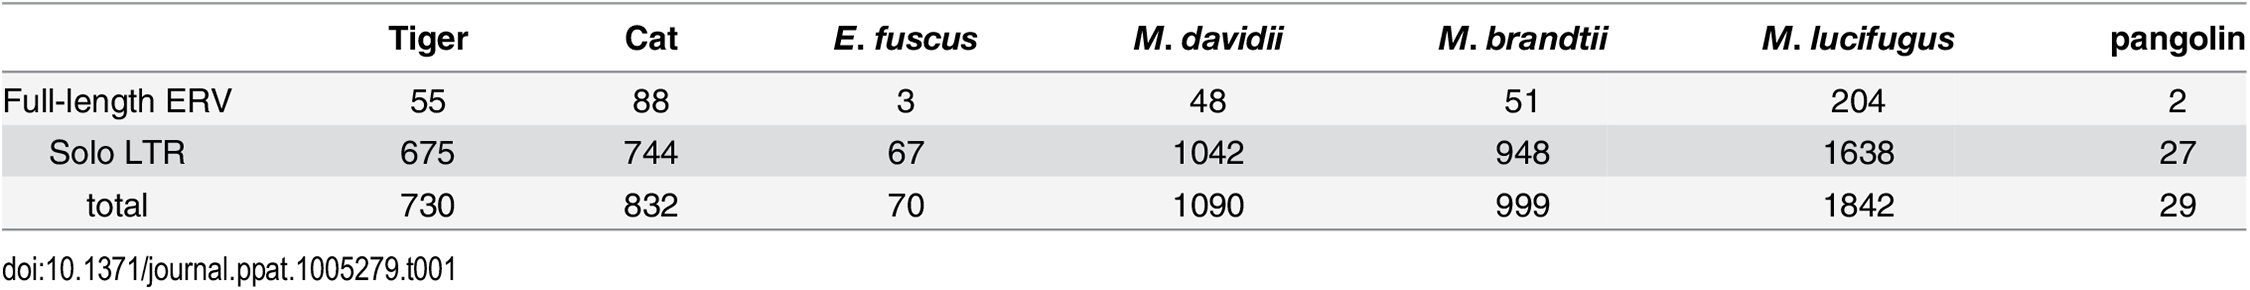 Copy number of MLERV1 related proviruses in different species.